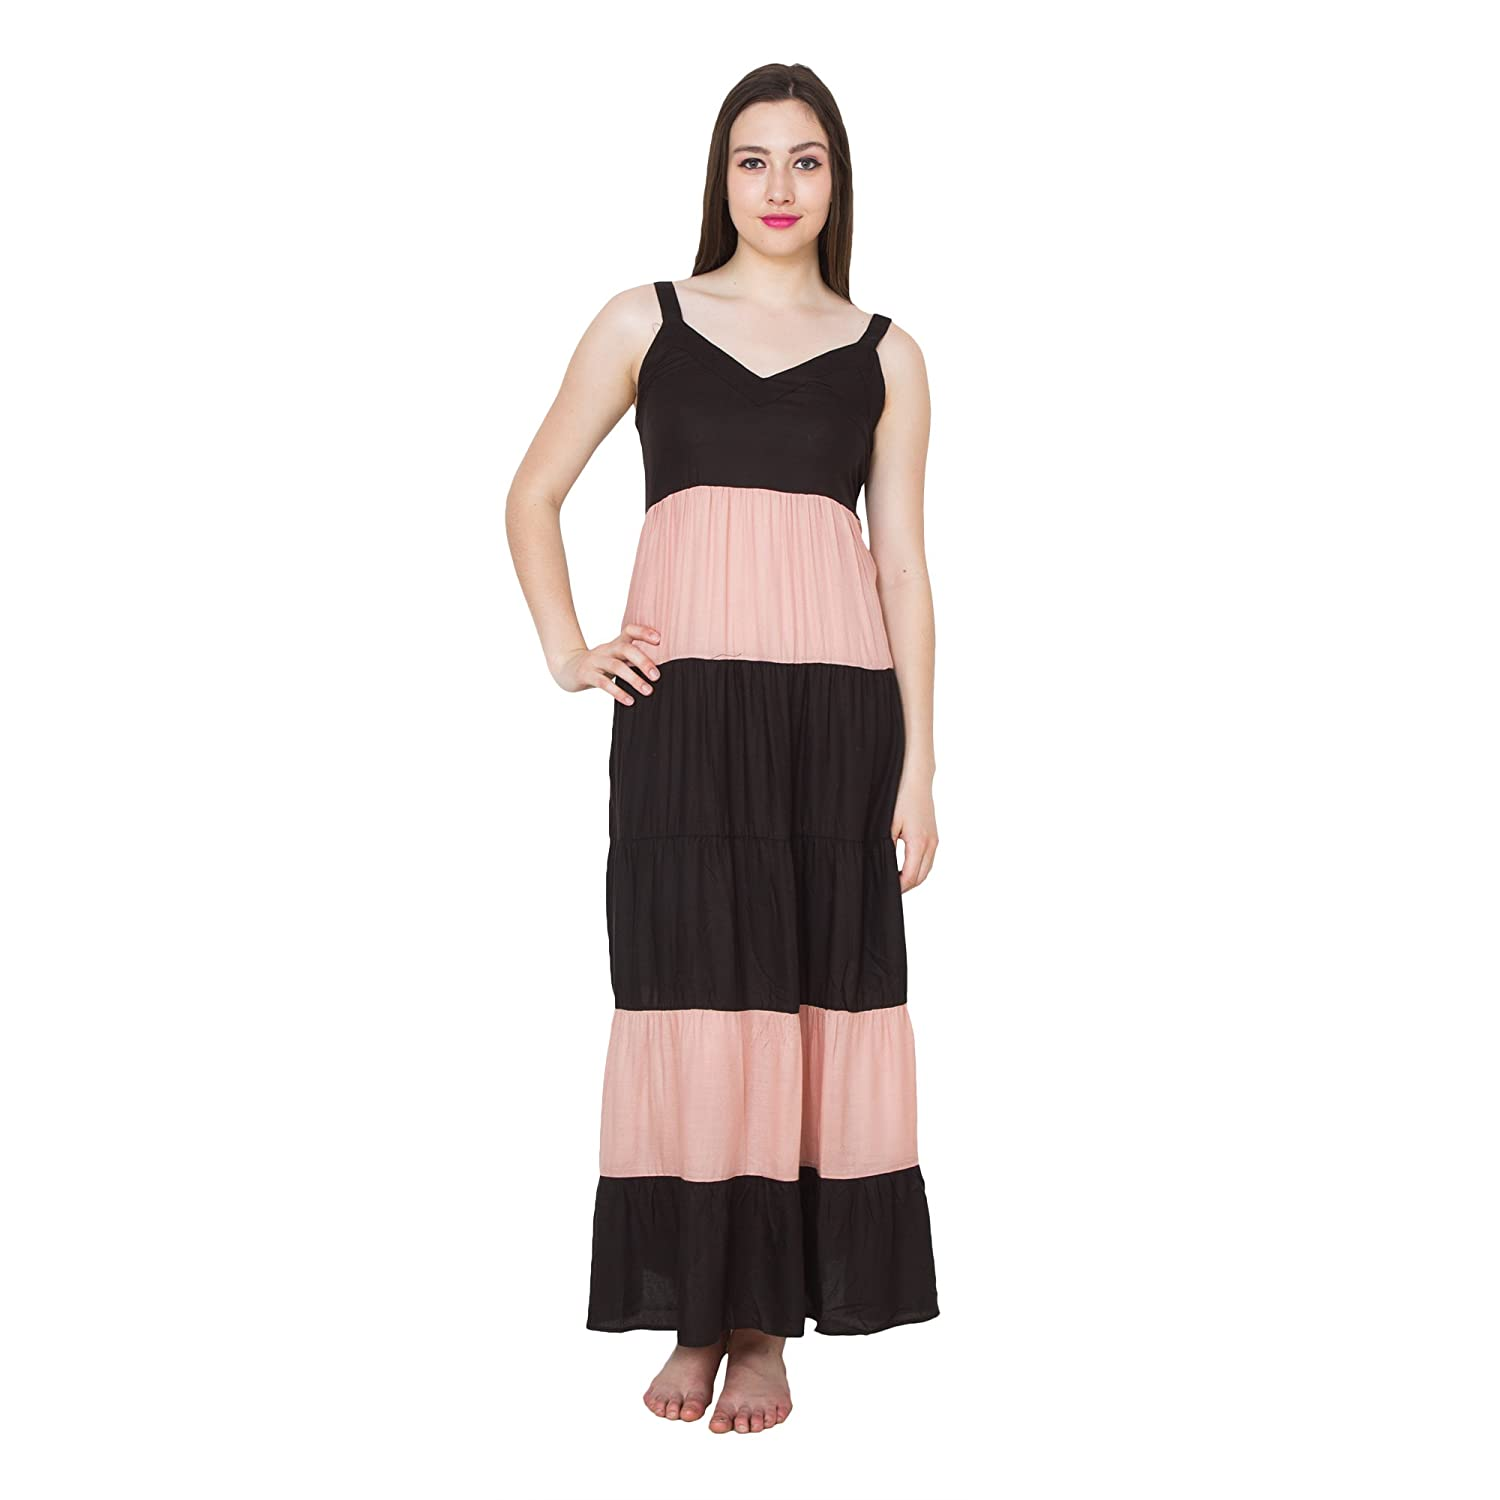 7e86a9a433 Patrorna Blended Women s Flared Empire Nighty Night Dress Gown in Black  Peach (Size S-7XL